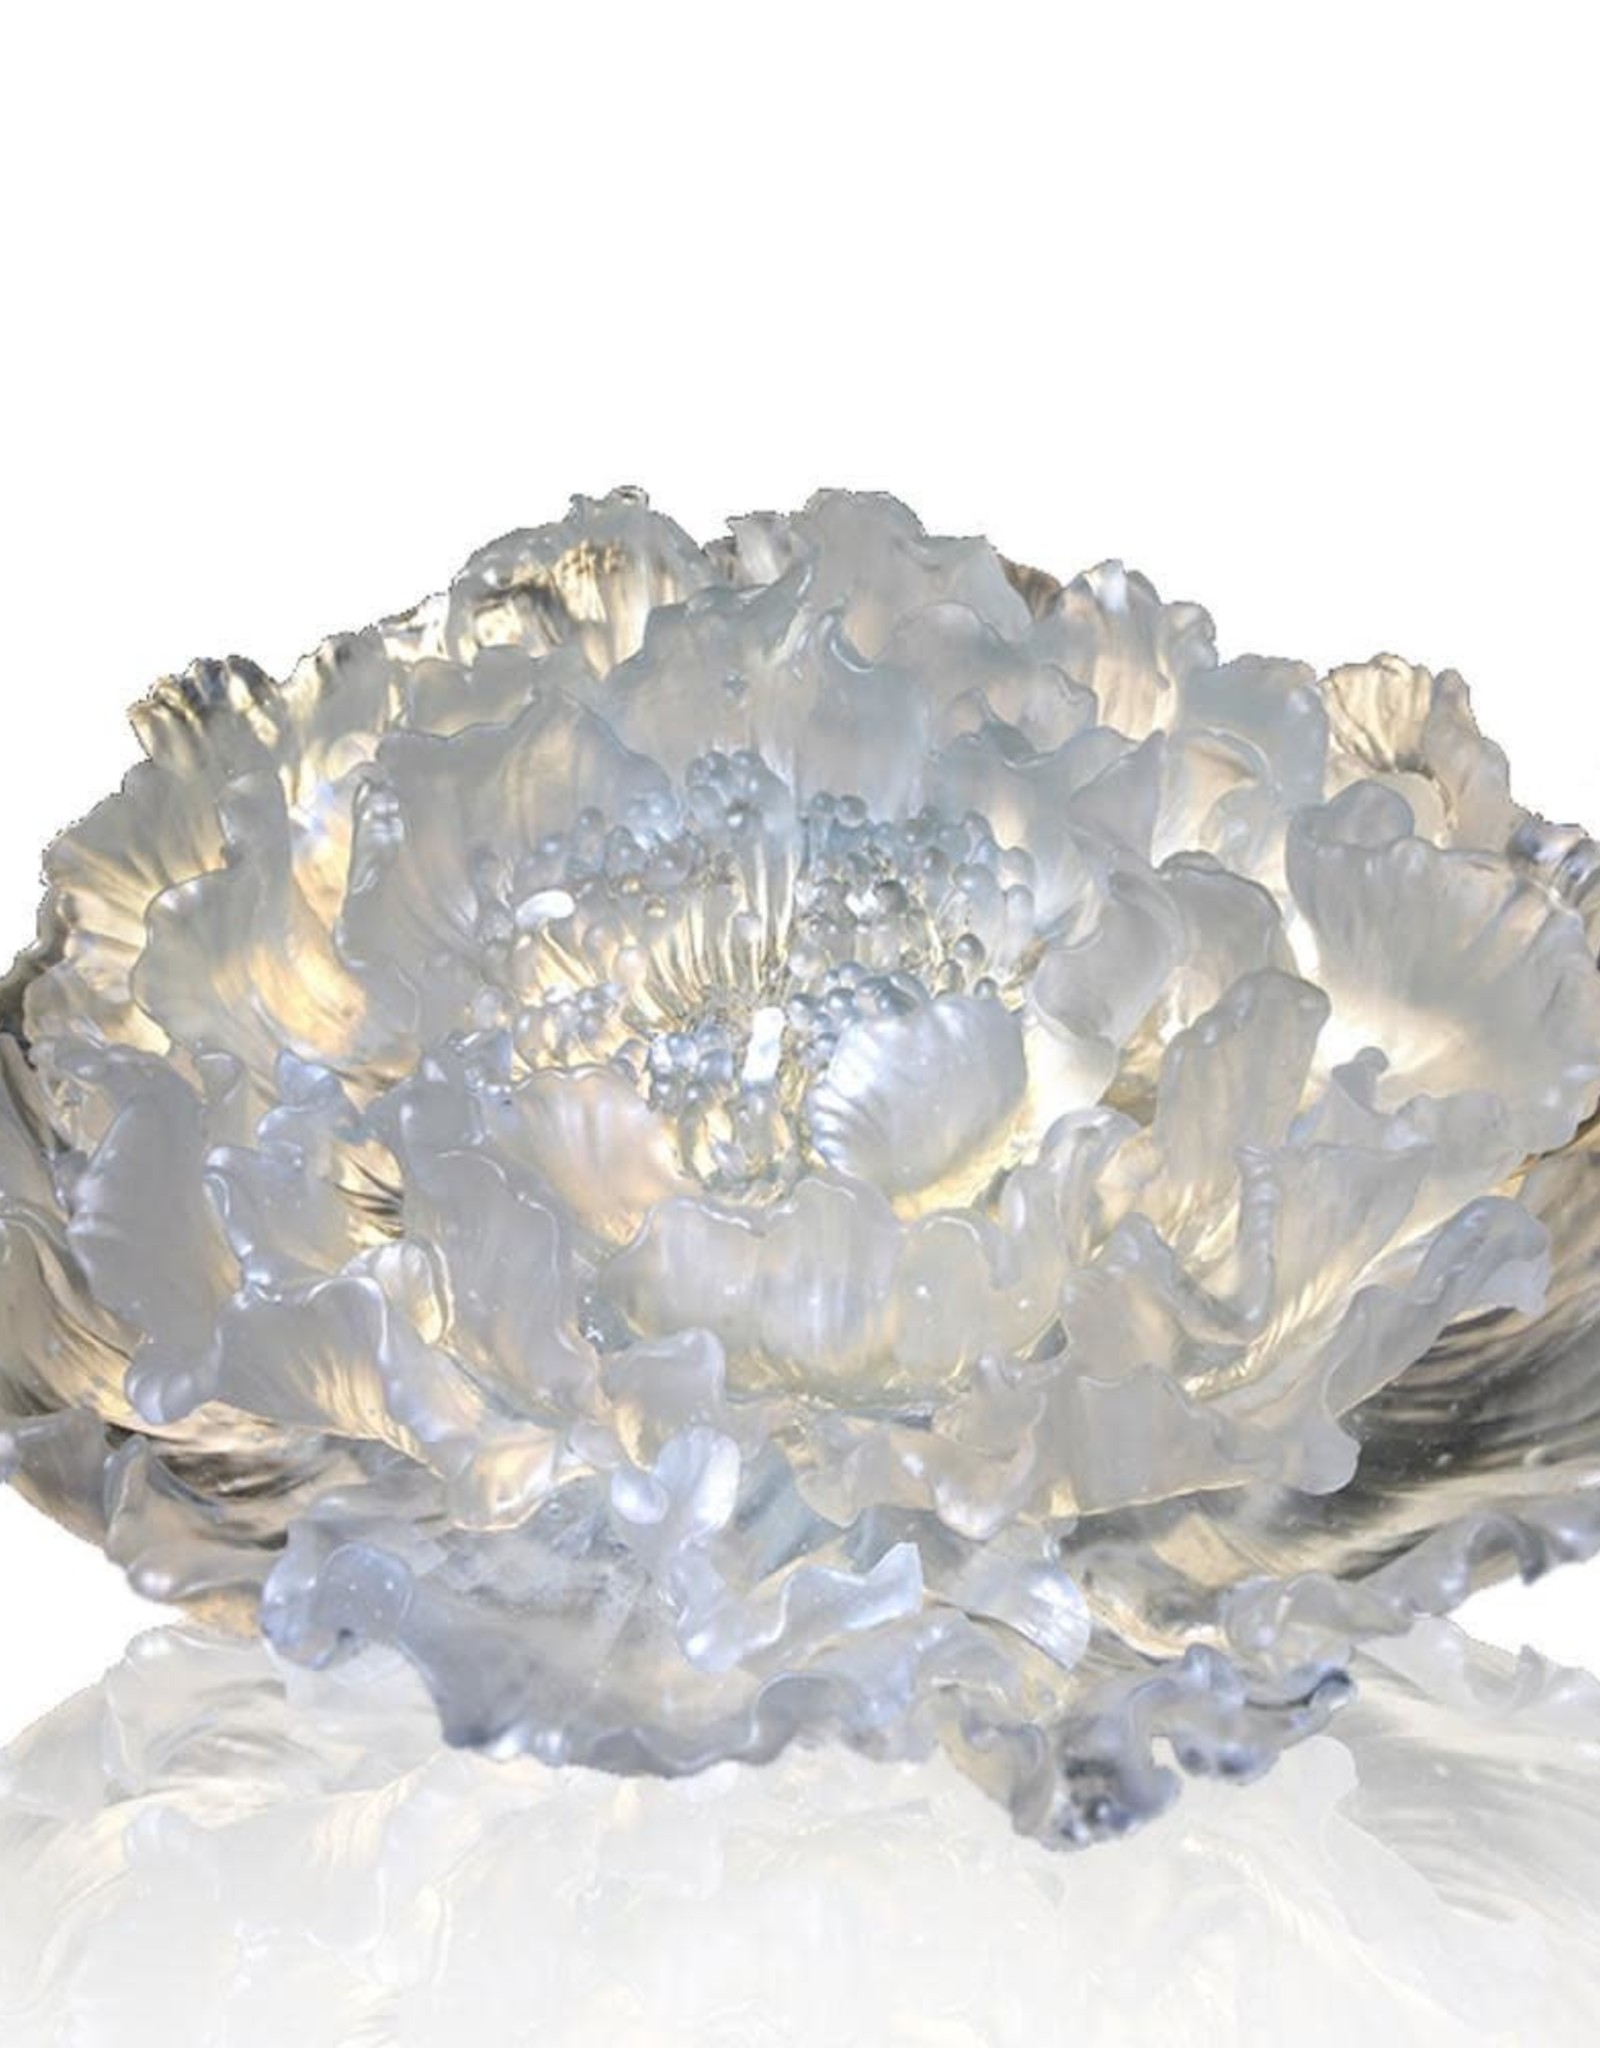 "LIULI Crystal Art Crystal Peony ""The Proof of Awareness"" (Collector's Edition) Limited Edition"